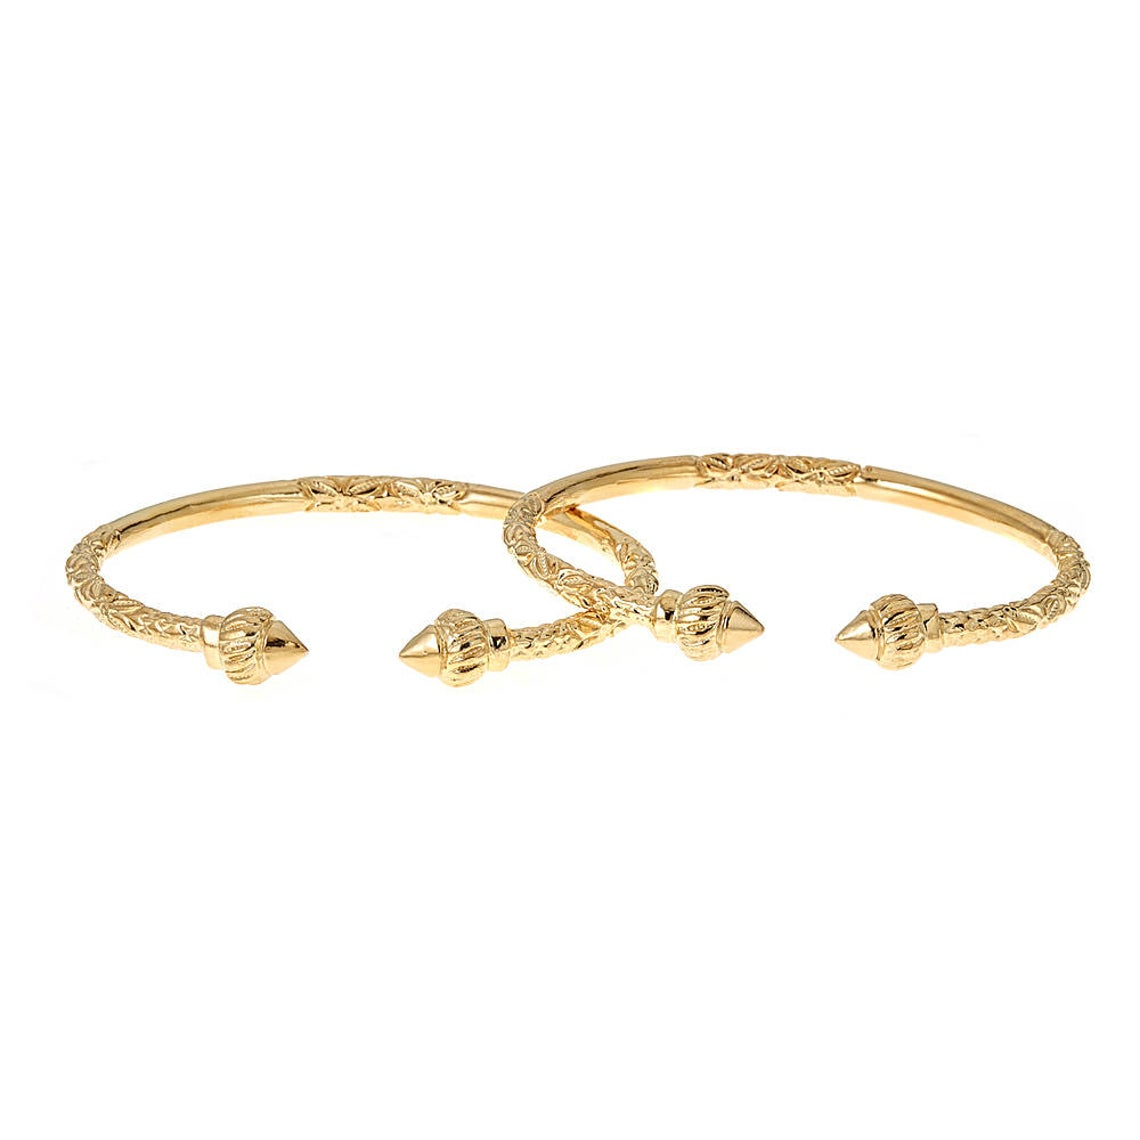 Solid Sterling Silver West-Indian Bangle Set Plated with 14K Gold